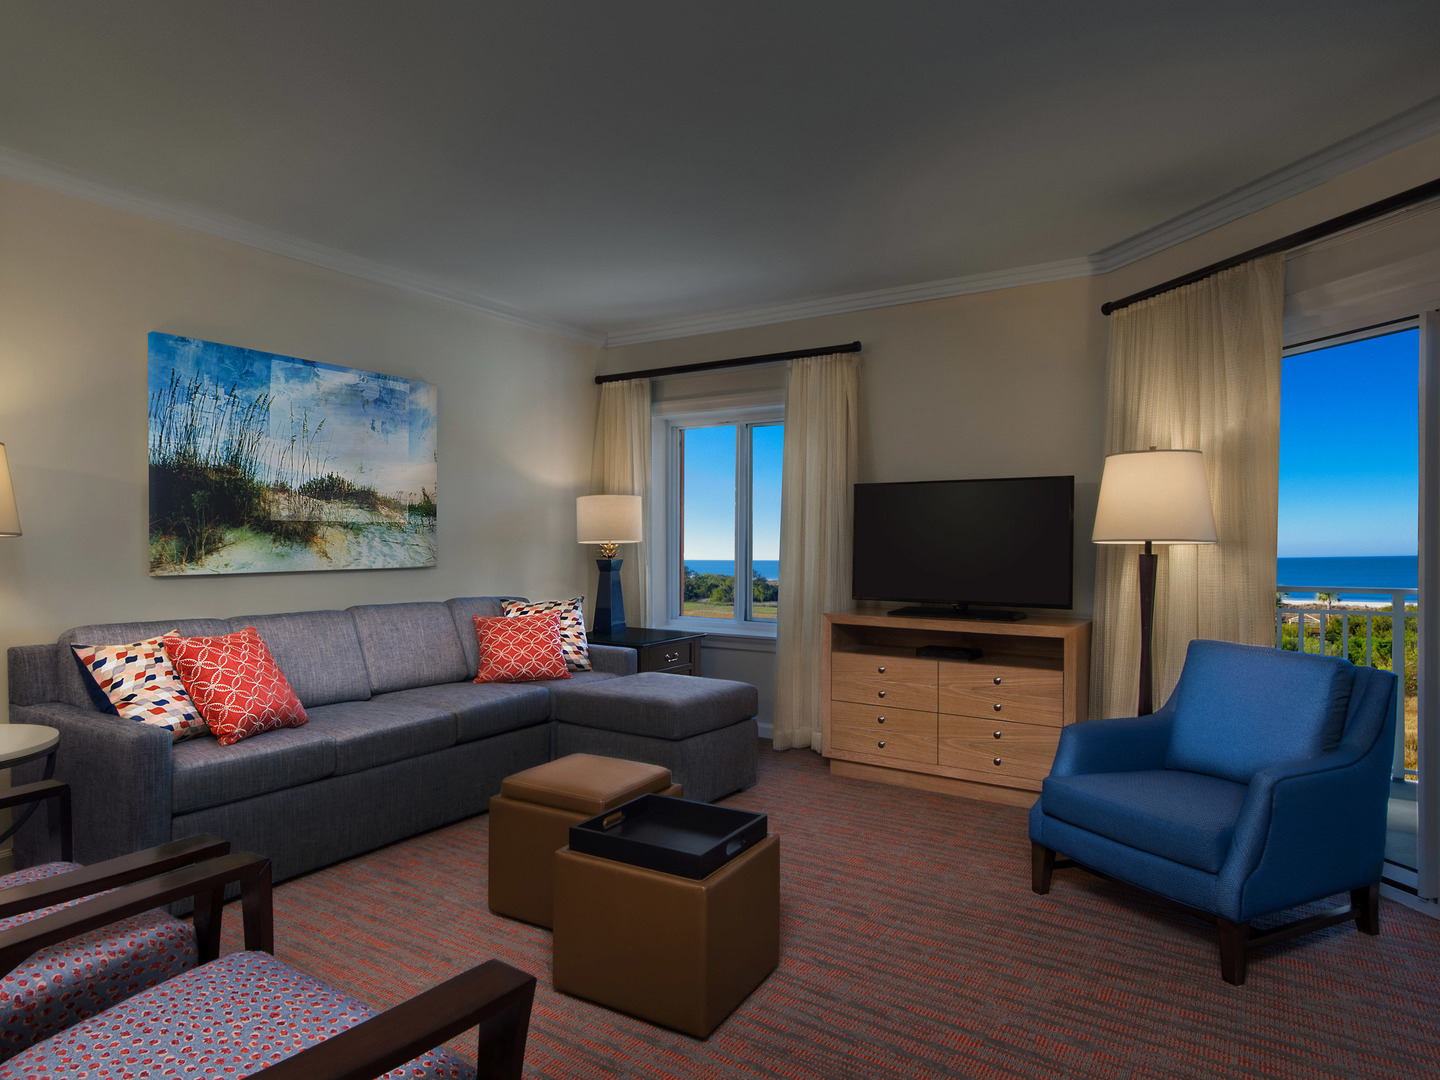 Marriott's SurfWatch<span class='trademark'>®</span> Villa Living Room. Marriott's SurfWatch<span class='trademark'>®</span> is located in Hilton Head Island, South Carolina United States.